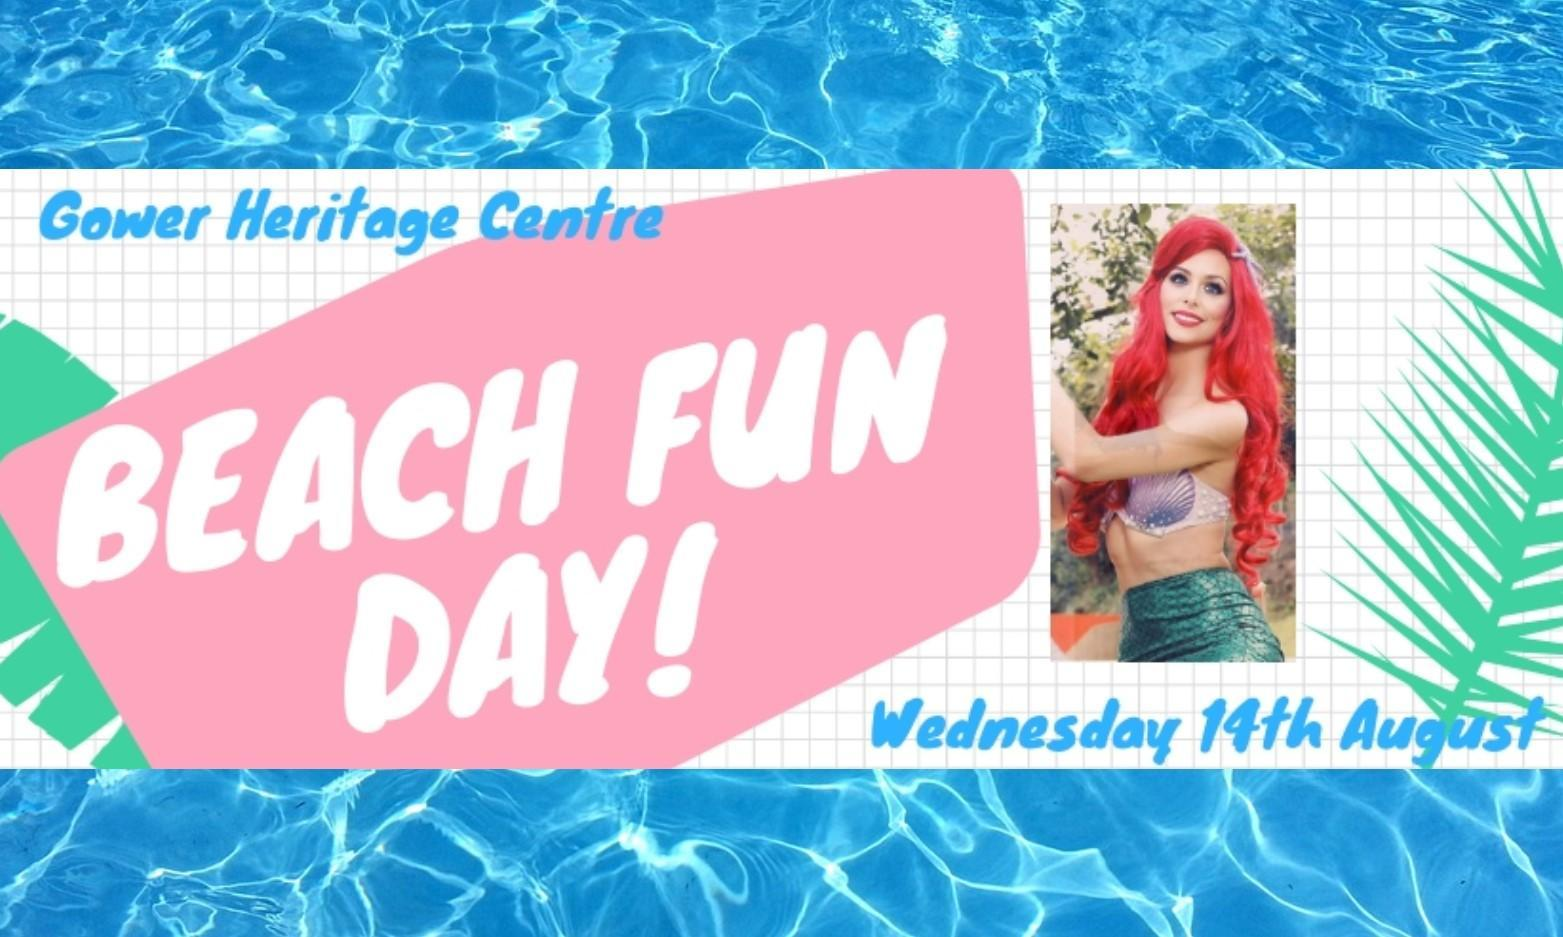 Beach Fun Day at Gower Heritage Centre